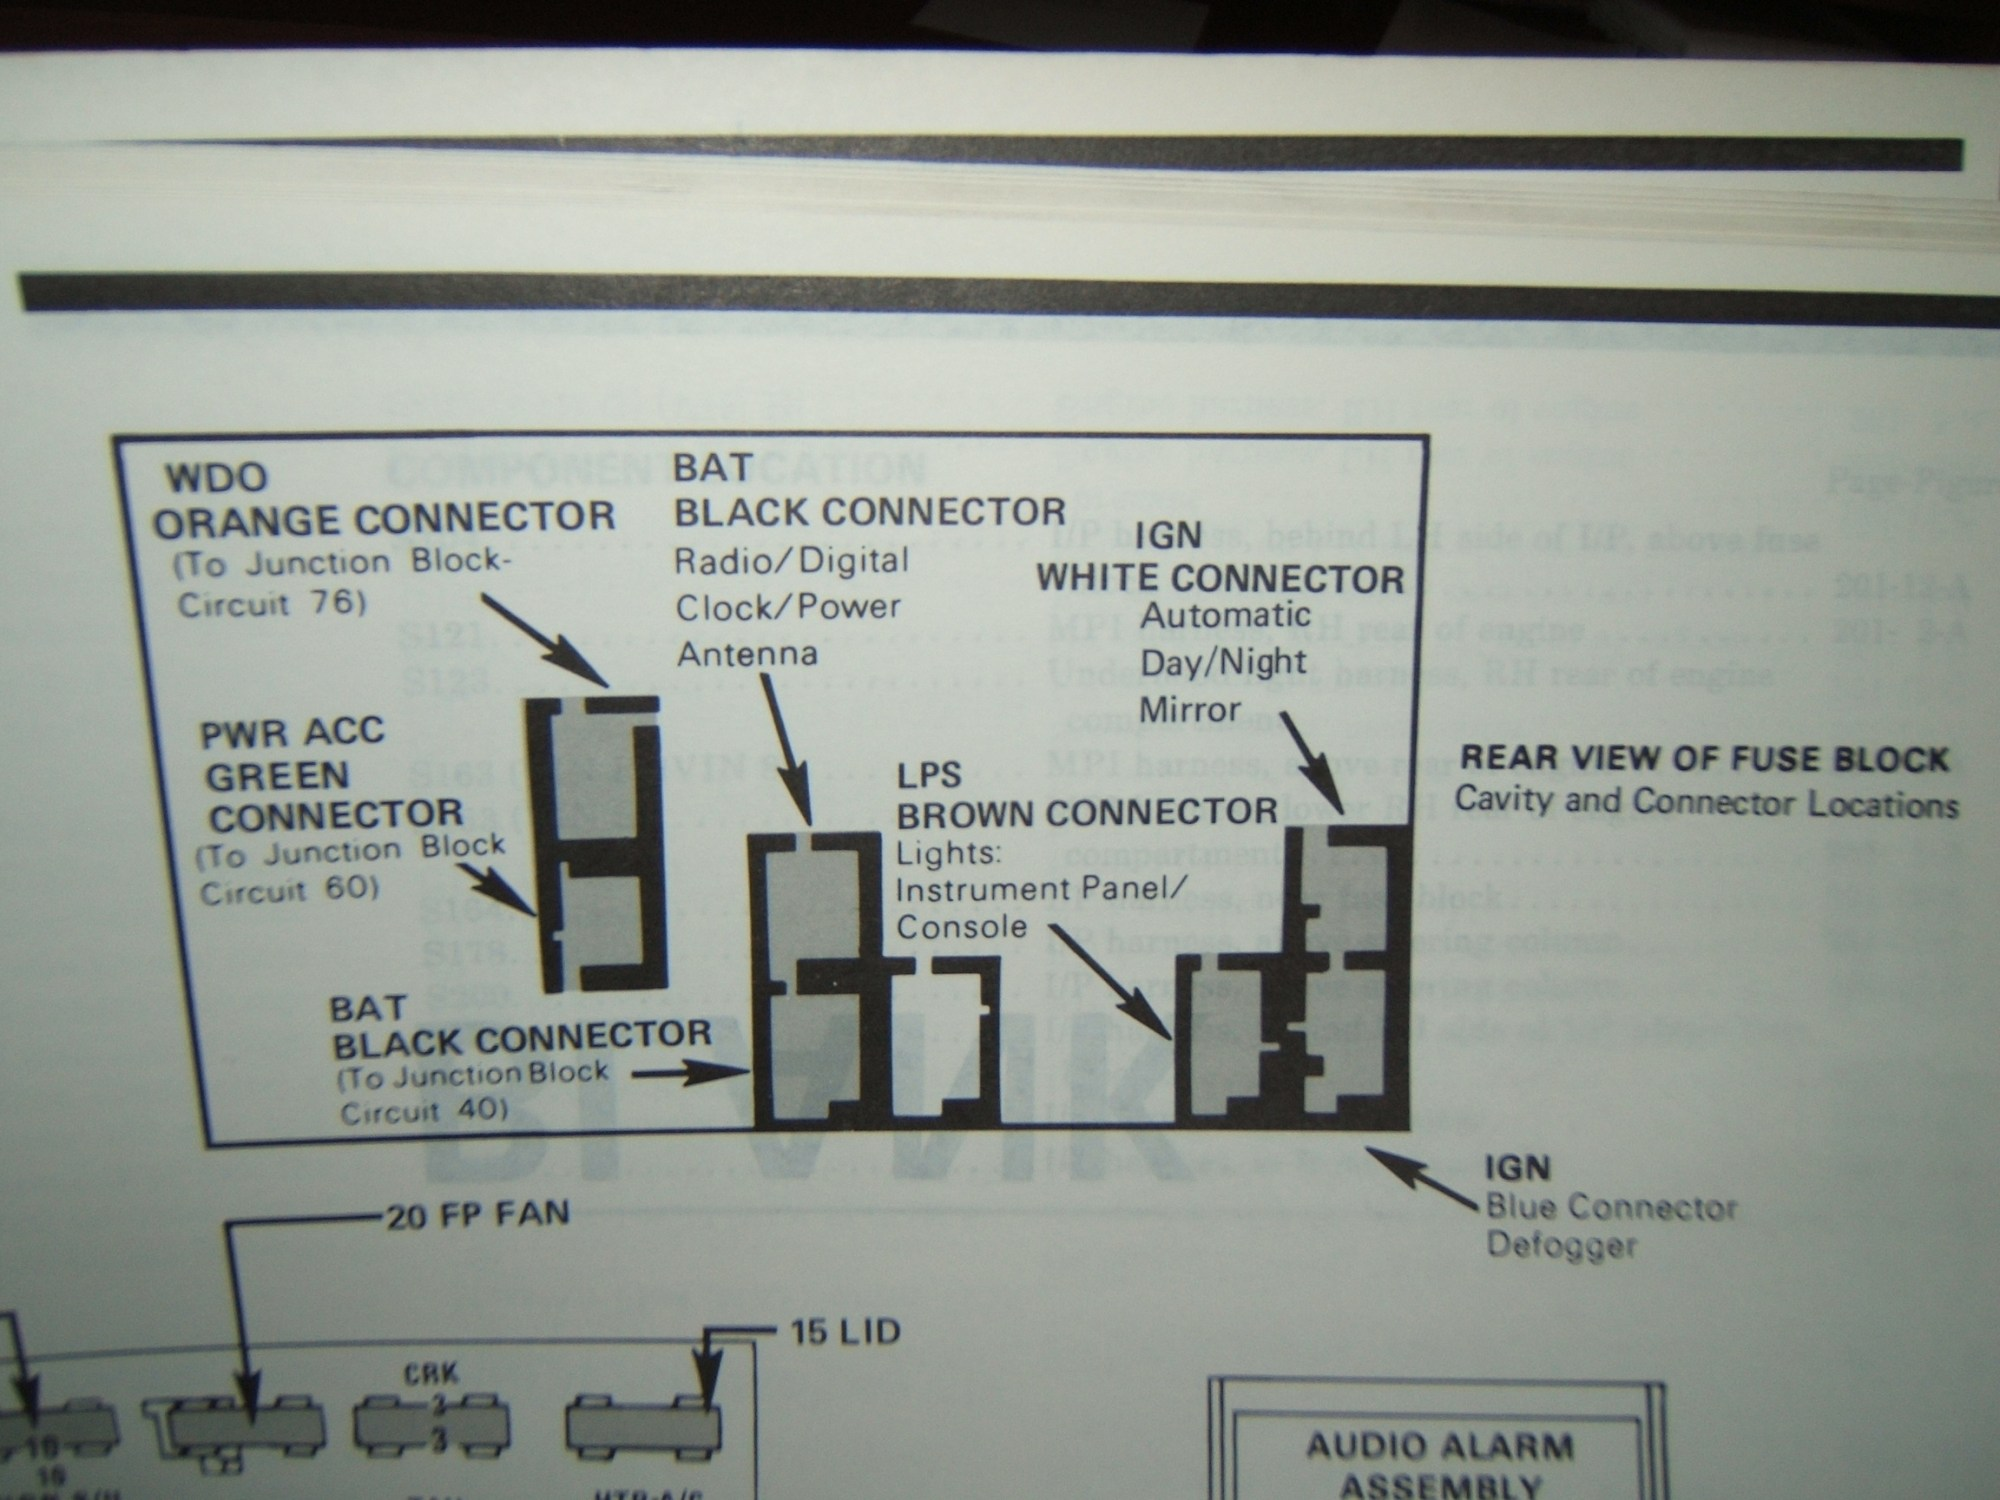 hight resolution of fuse box diagram for 1988 camaro iroc z third generation f body rh thirdgen org 1990 1986